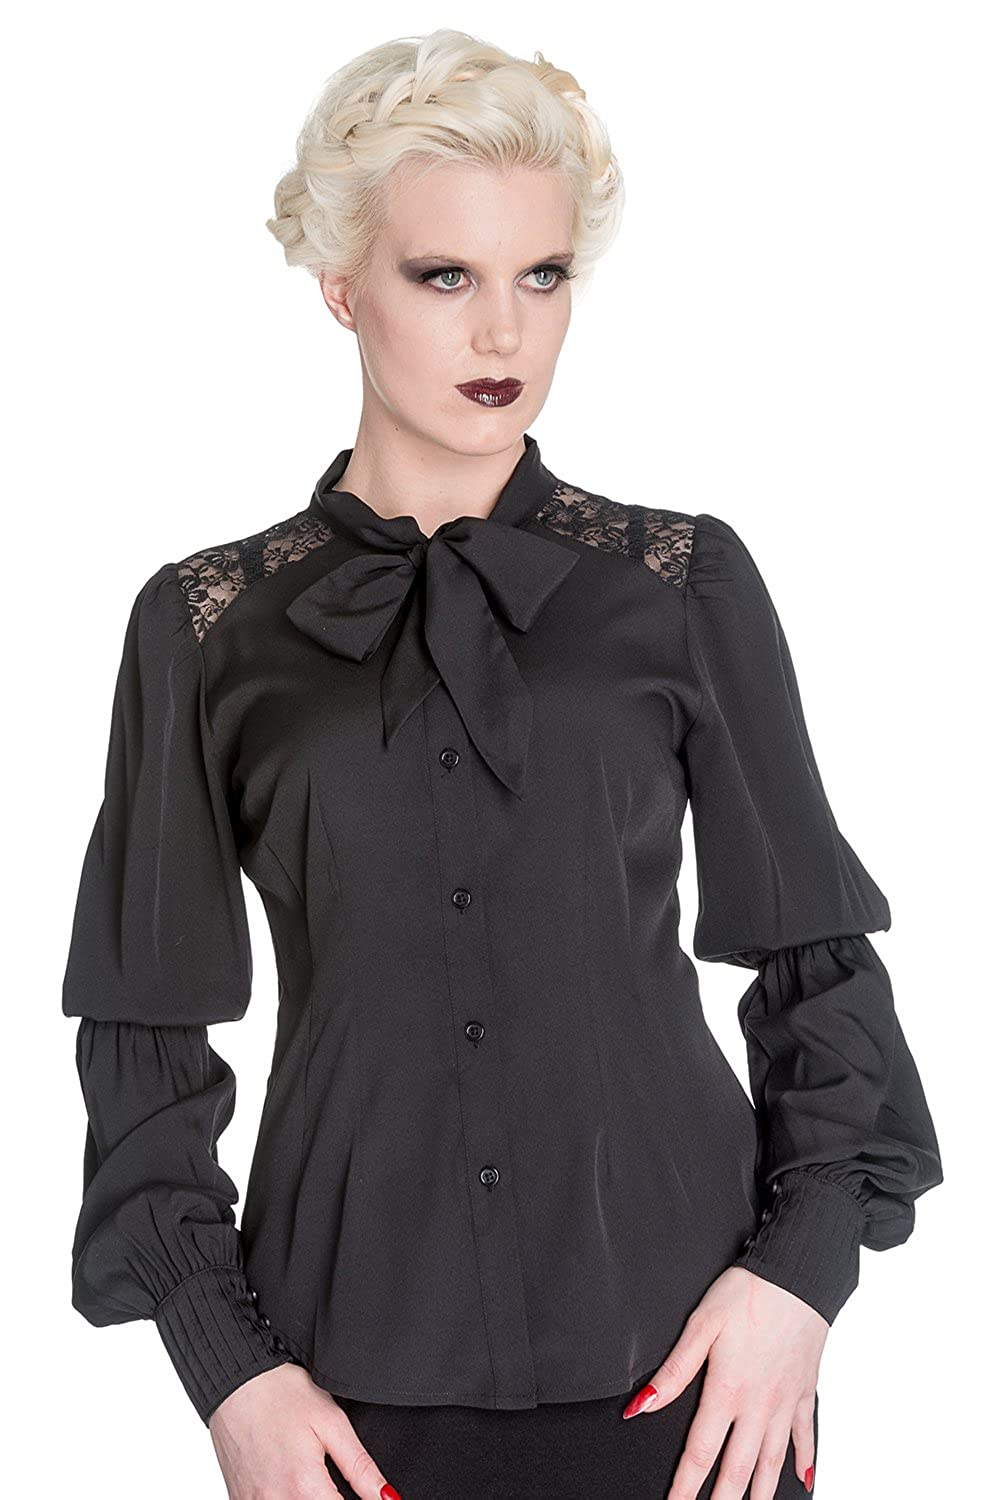 Vintage Retro Halloween Themed Clothing Spin Doctor Black Chiffon Gothic Romance Bishop Long Sleeve Blouse $49.95 AT vintagedancer.com